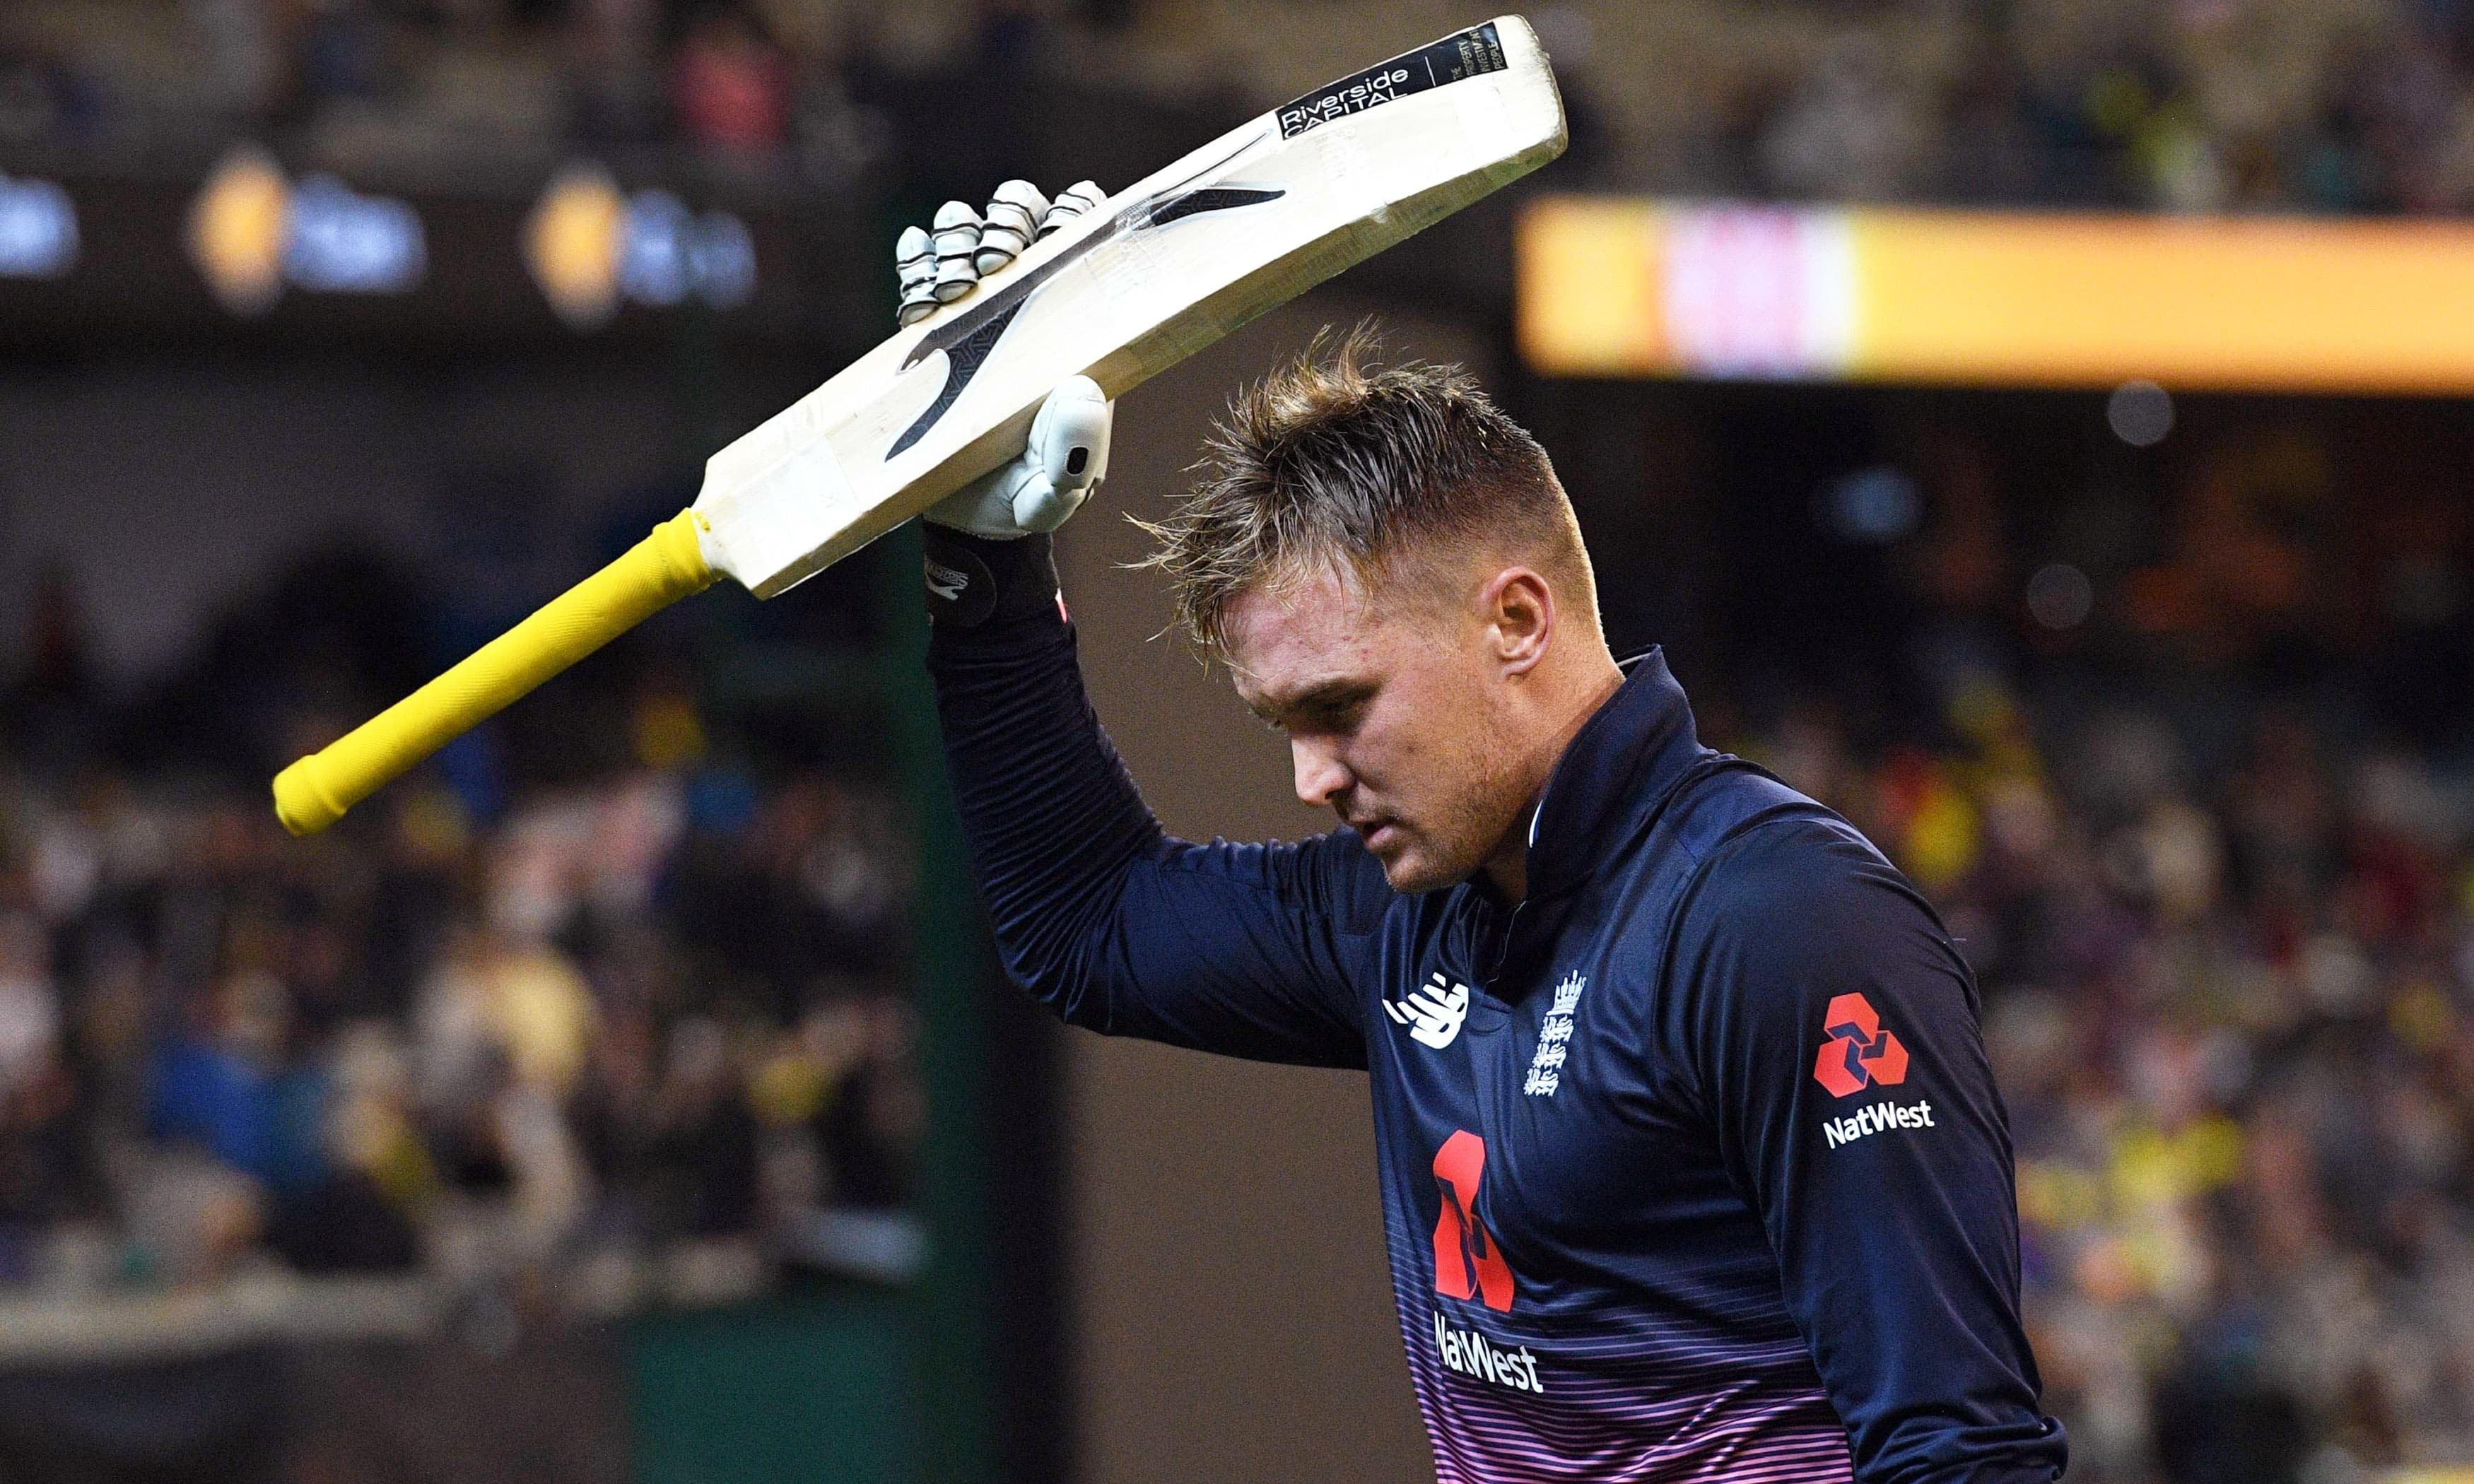 The in-form opening batsman was been ruled out of England's match against Afghanistan at Old Trafford on Tuesday. — AFP/File